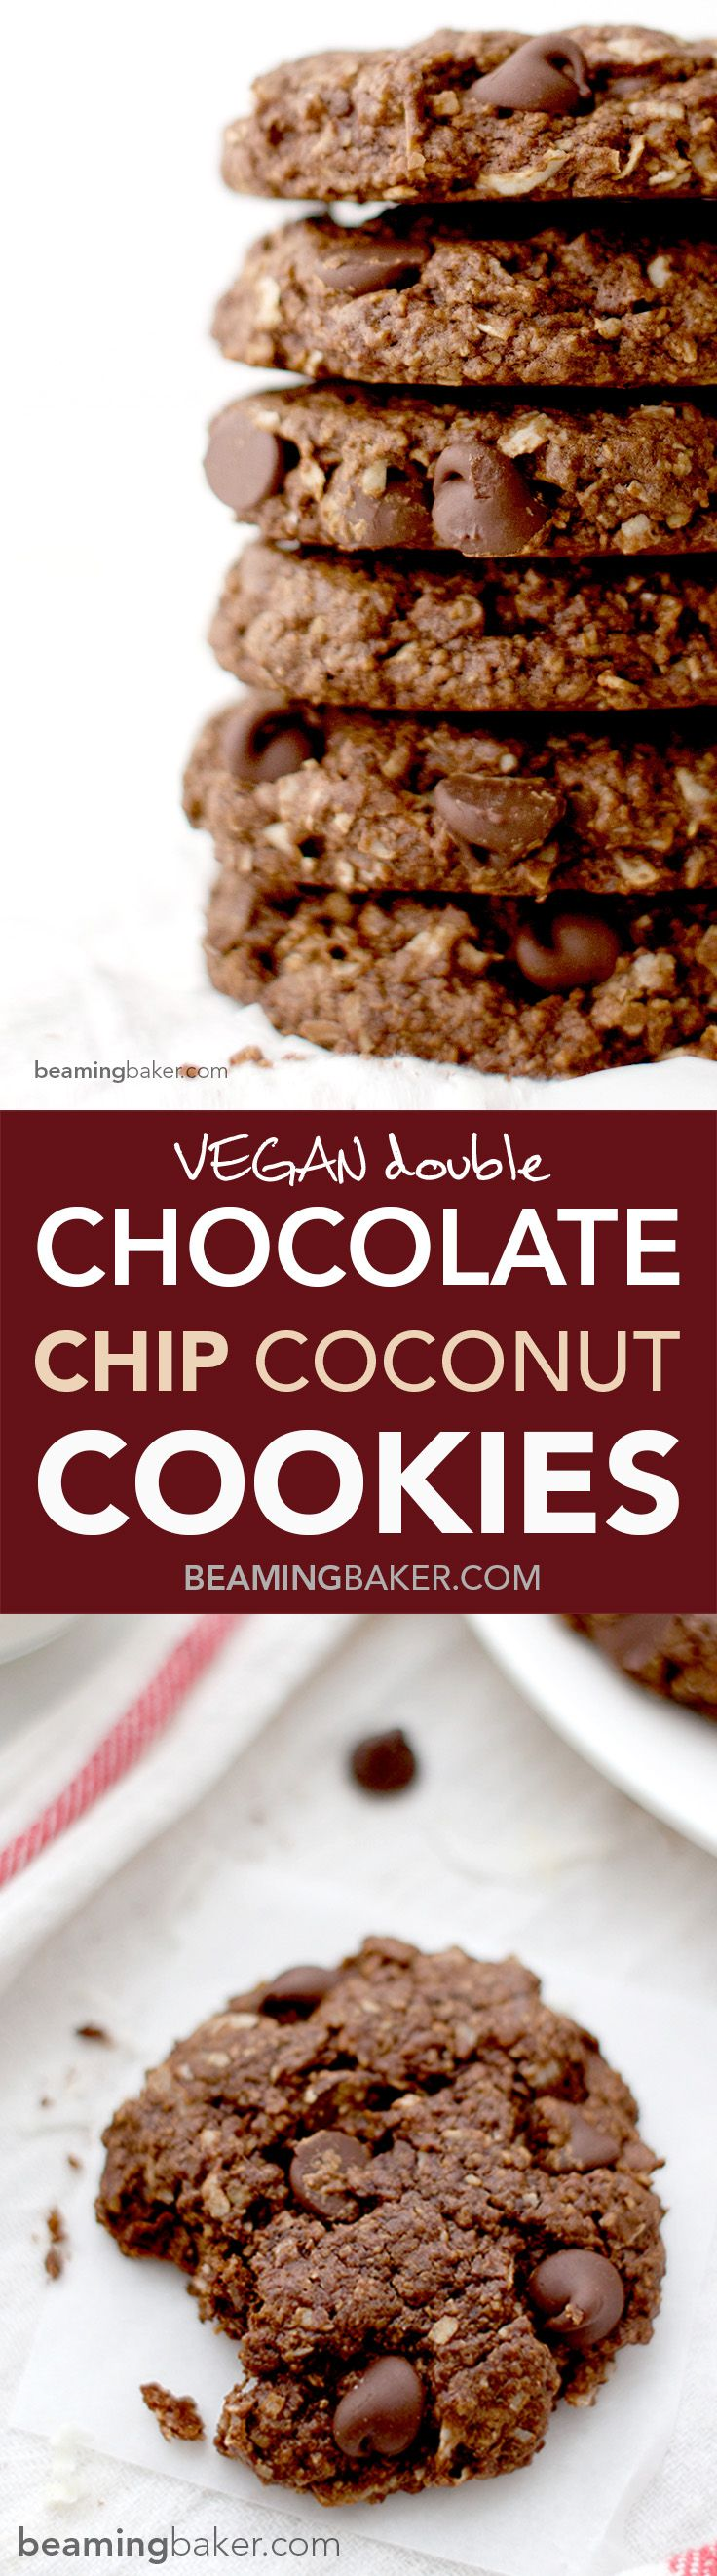 Rich, chewy & indulgent Double Chocolate Chip Coconut Cookies. A simple, vegan, GF recipe for twice the chocolate plus coconut oil, coconut sugar and coconut shreds! BeamingBaker.com #Vegan #GlutenFree